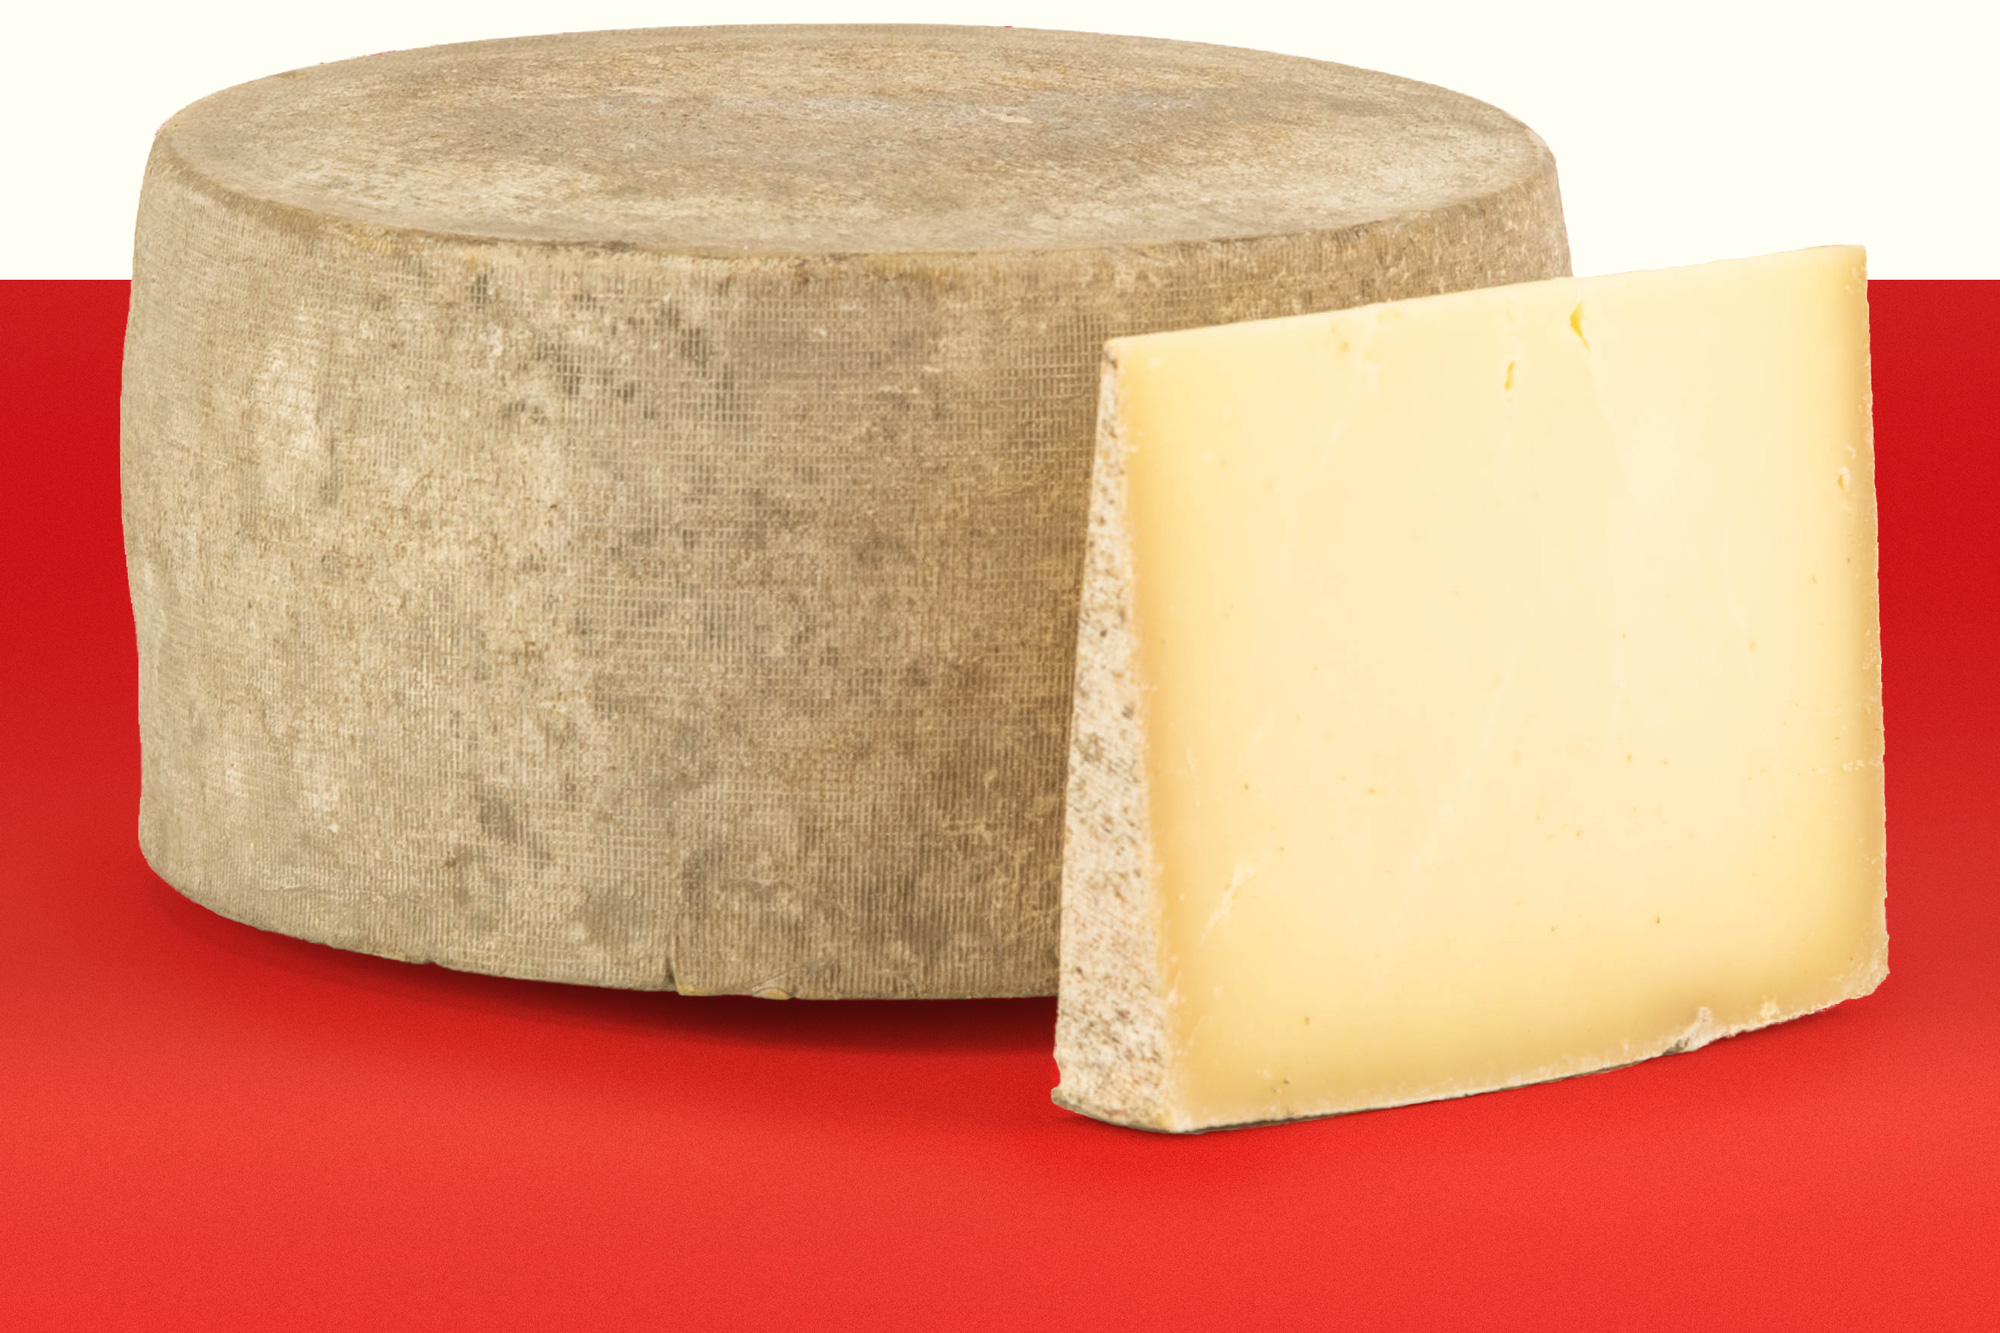 Tomme d'Evanston - This fresh-tasting elegant alpine-style cheese is mild and nutty, with subtleties of fresh straw and a hint of mustard on the finish. This cheese is perfect for a cheese board, but is also a great melting cheese, similar to a gruyère cheese. Tomme is typically named for the place in which it is made, thus we've given a nod to the neighborhood where we've laid our roots with this cheese.Ingredients: Pasteurized Local Jersey Cow Milk, Salt, Cultures & Animal Rennet